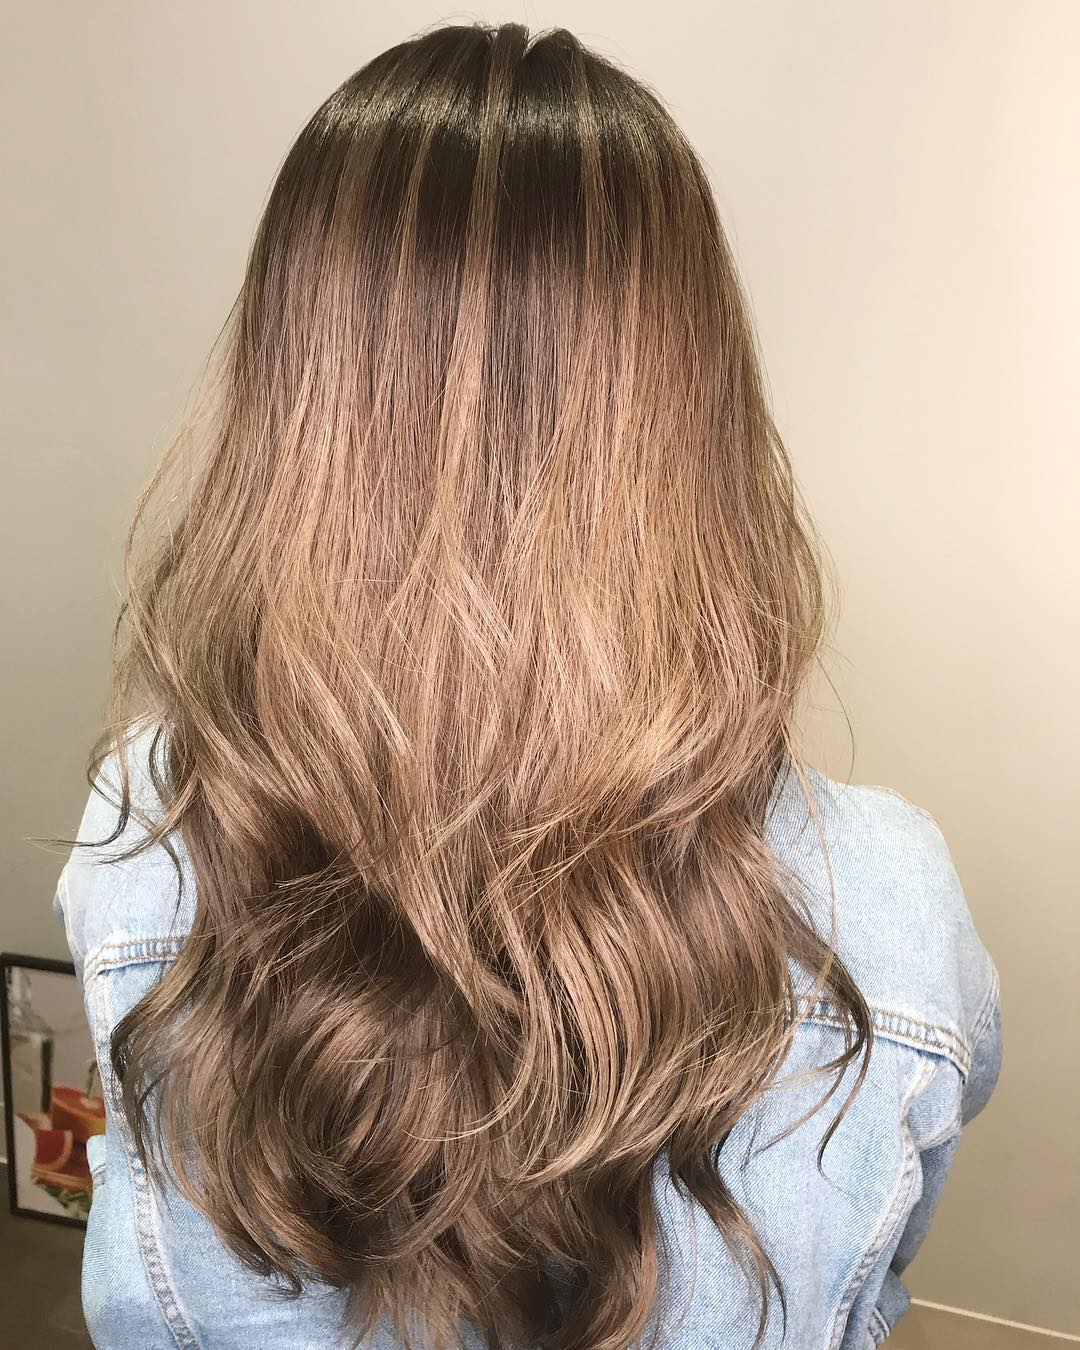 Brown Hair Colour by Ken from Threes